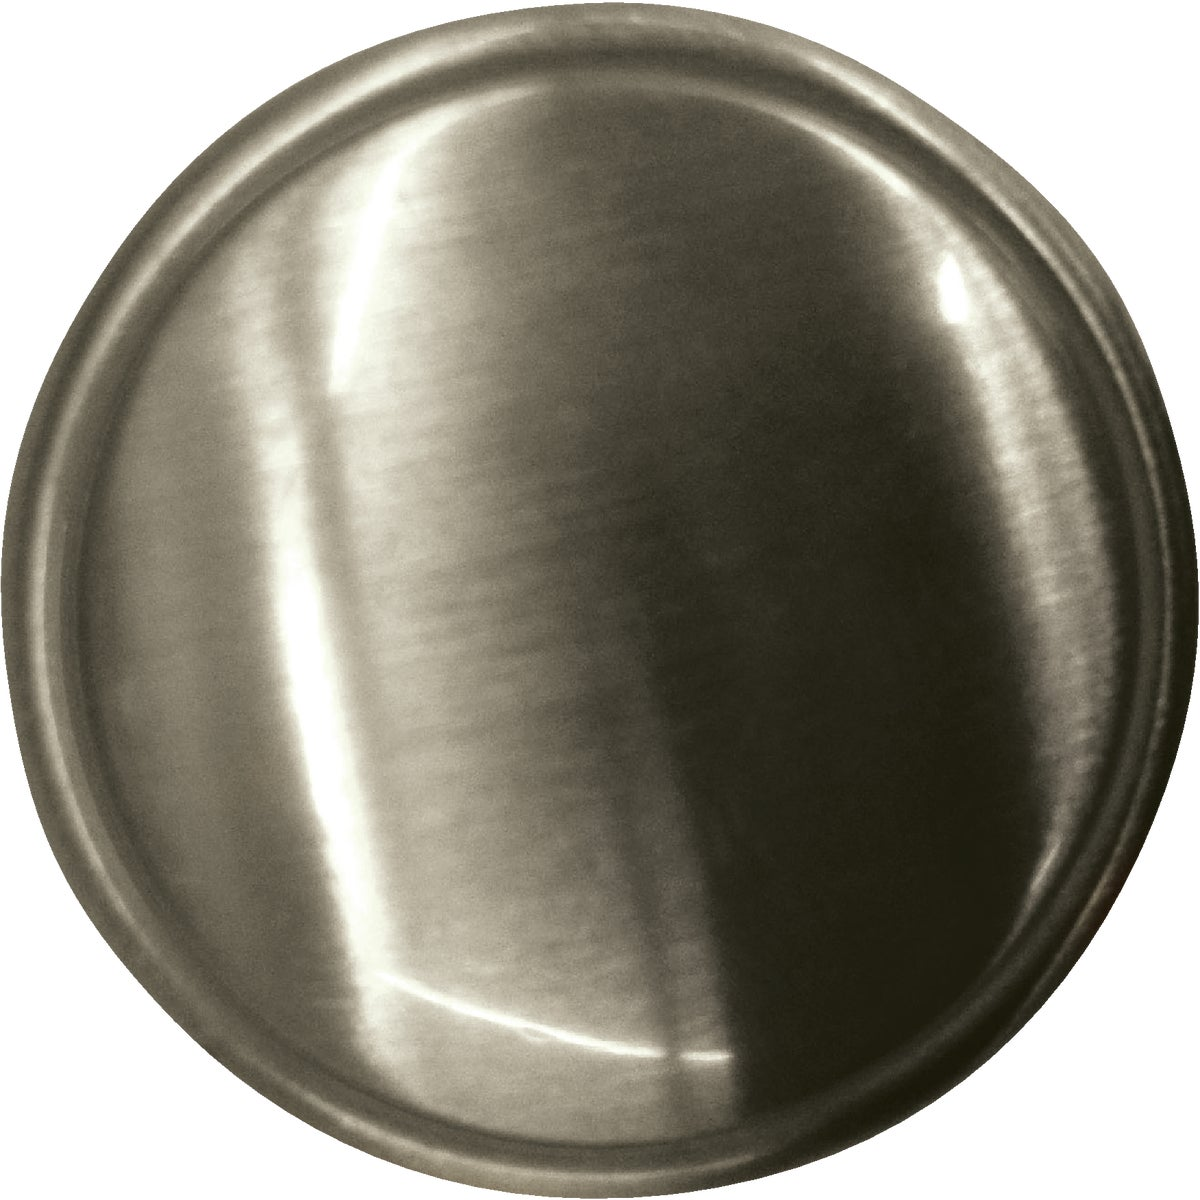 "1-1/4"" SATIN NICKEL KNOB - BP1387G10 by Amerock Corporation"